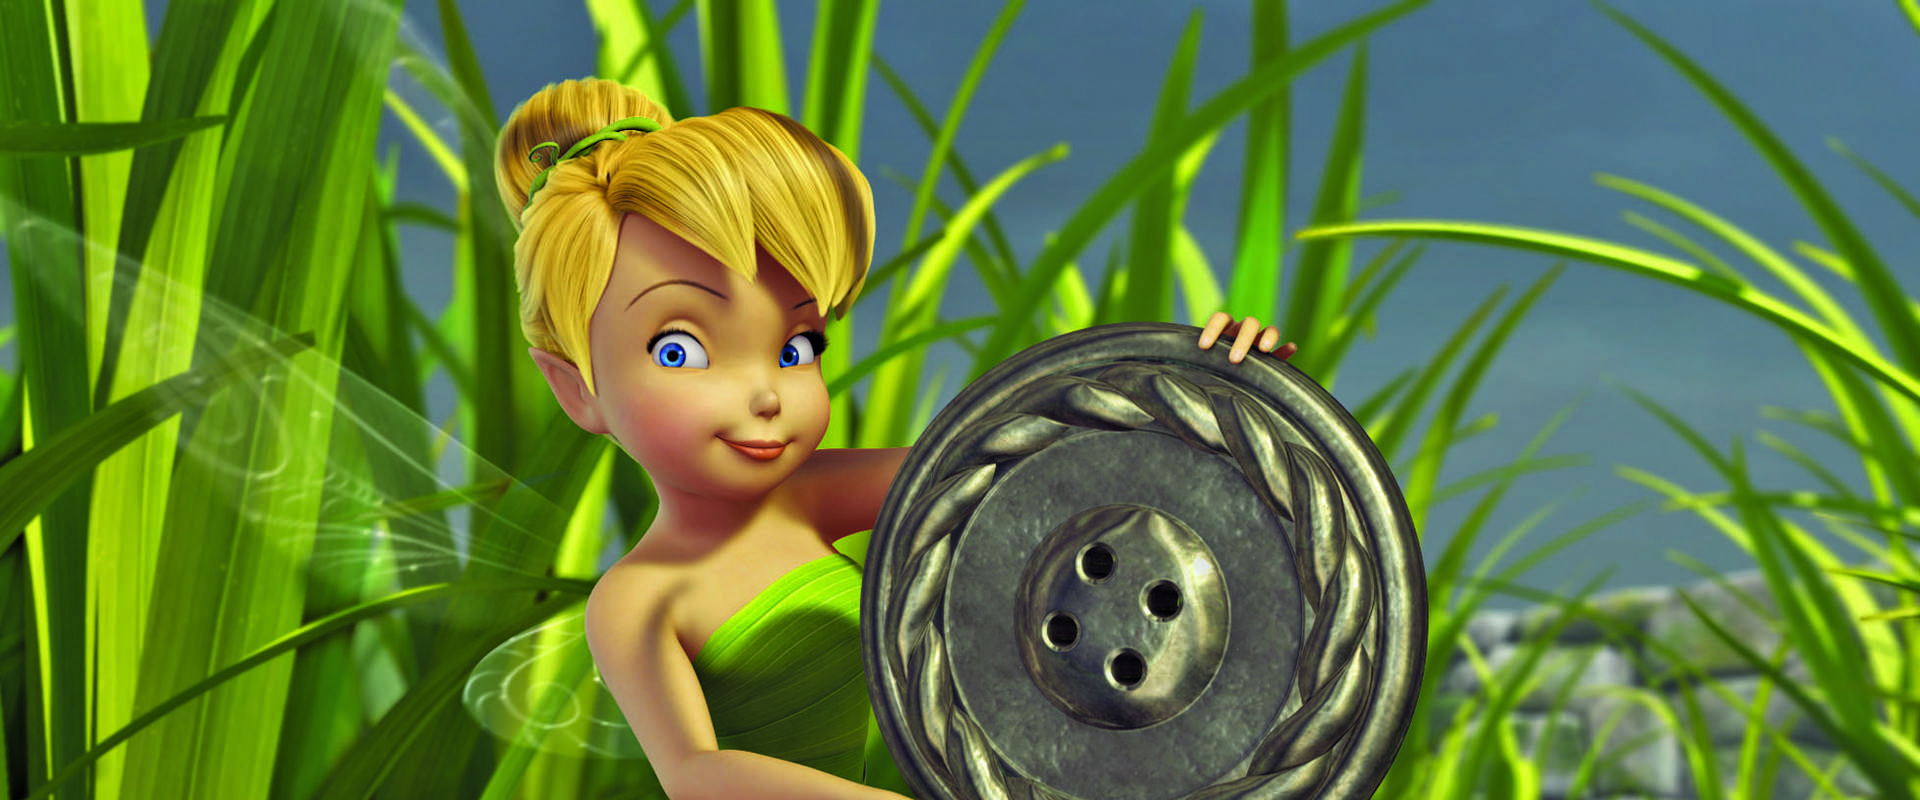 Tinker Bell and the Great Fairy Rescue background 1